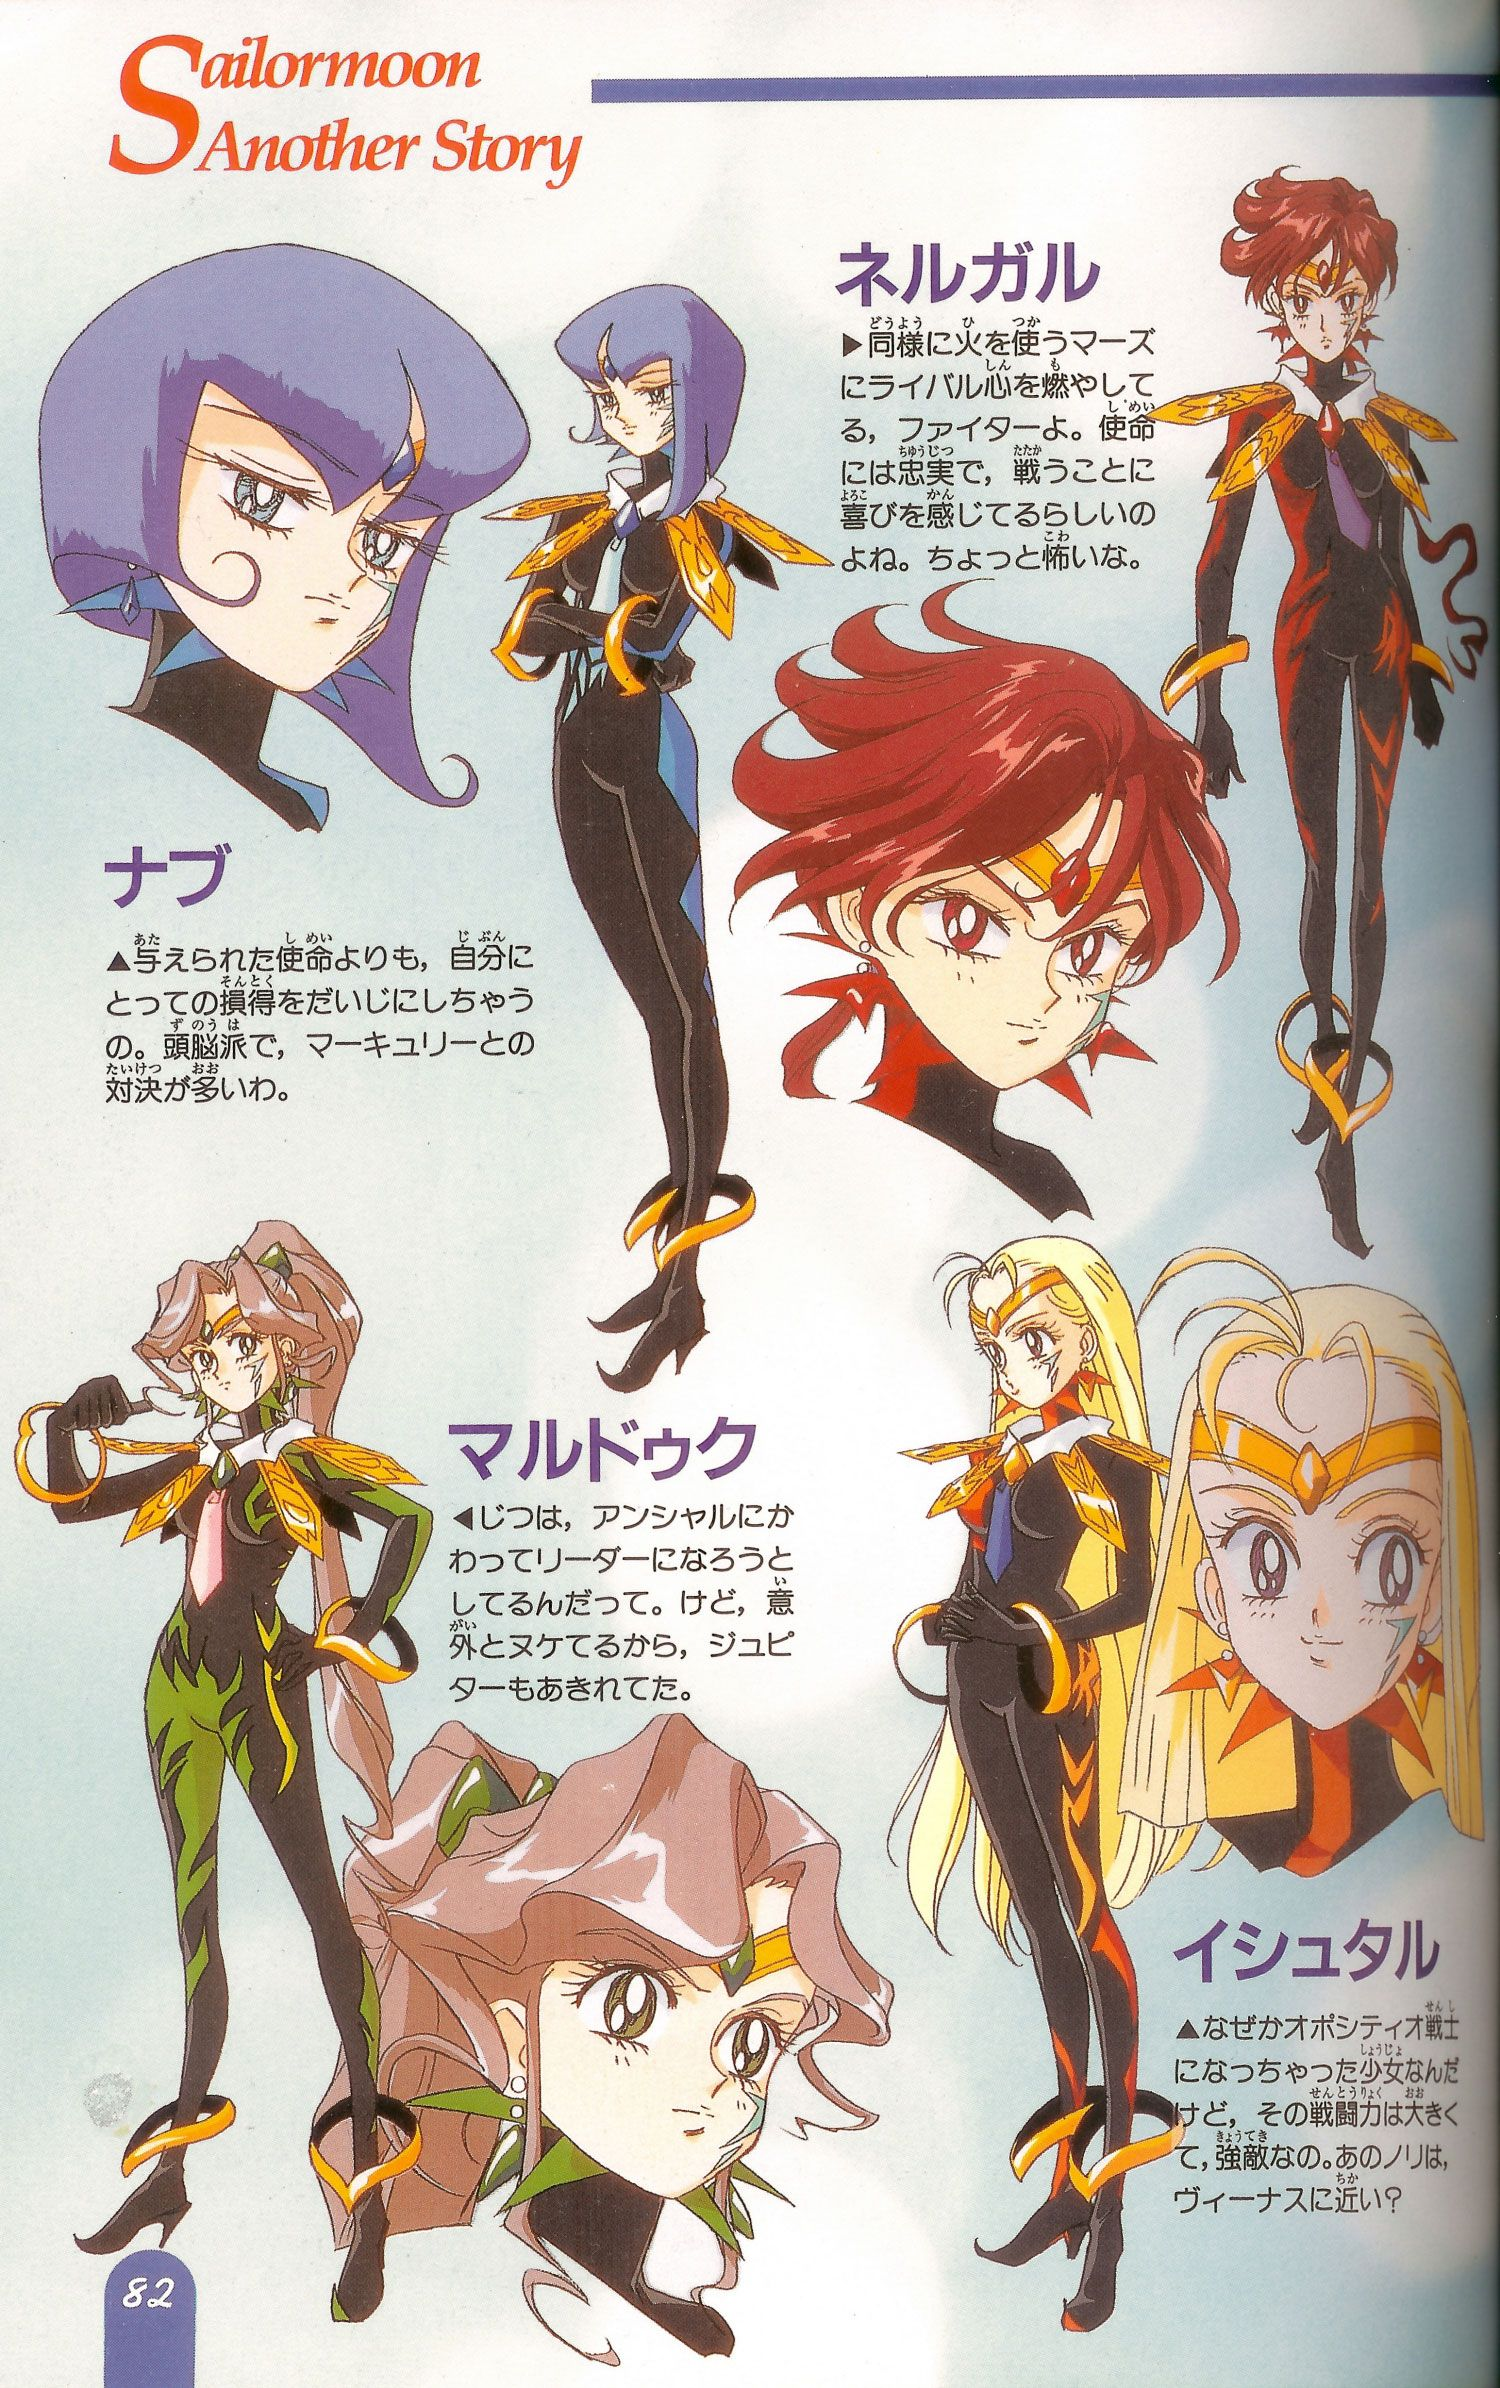 RPG Video Games, Anime, and more Sailor moon character